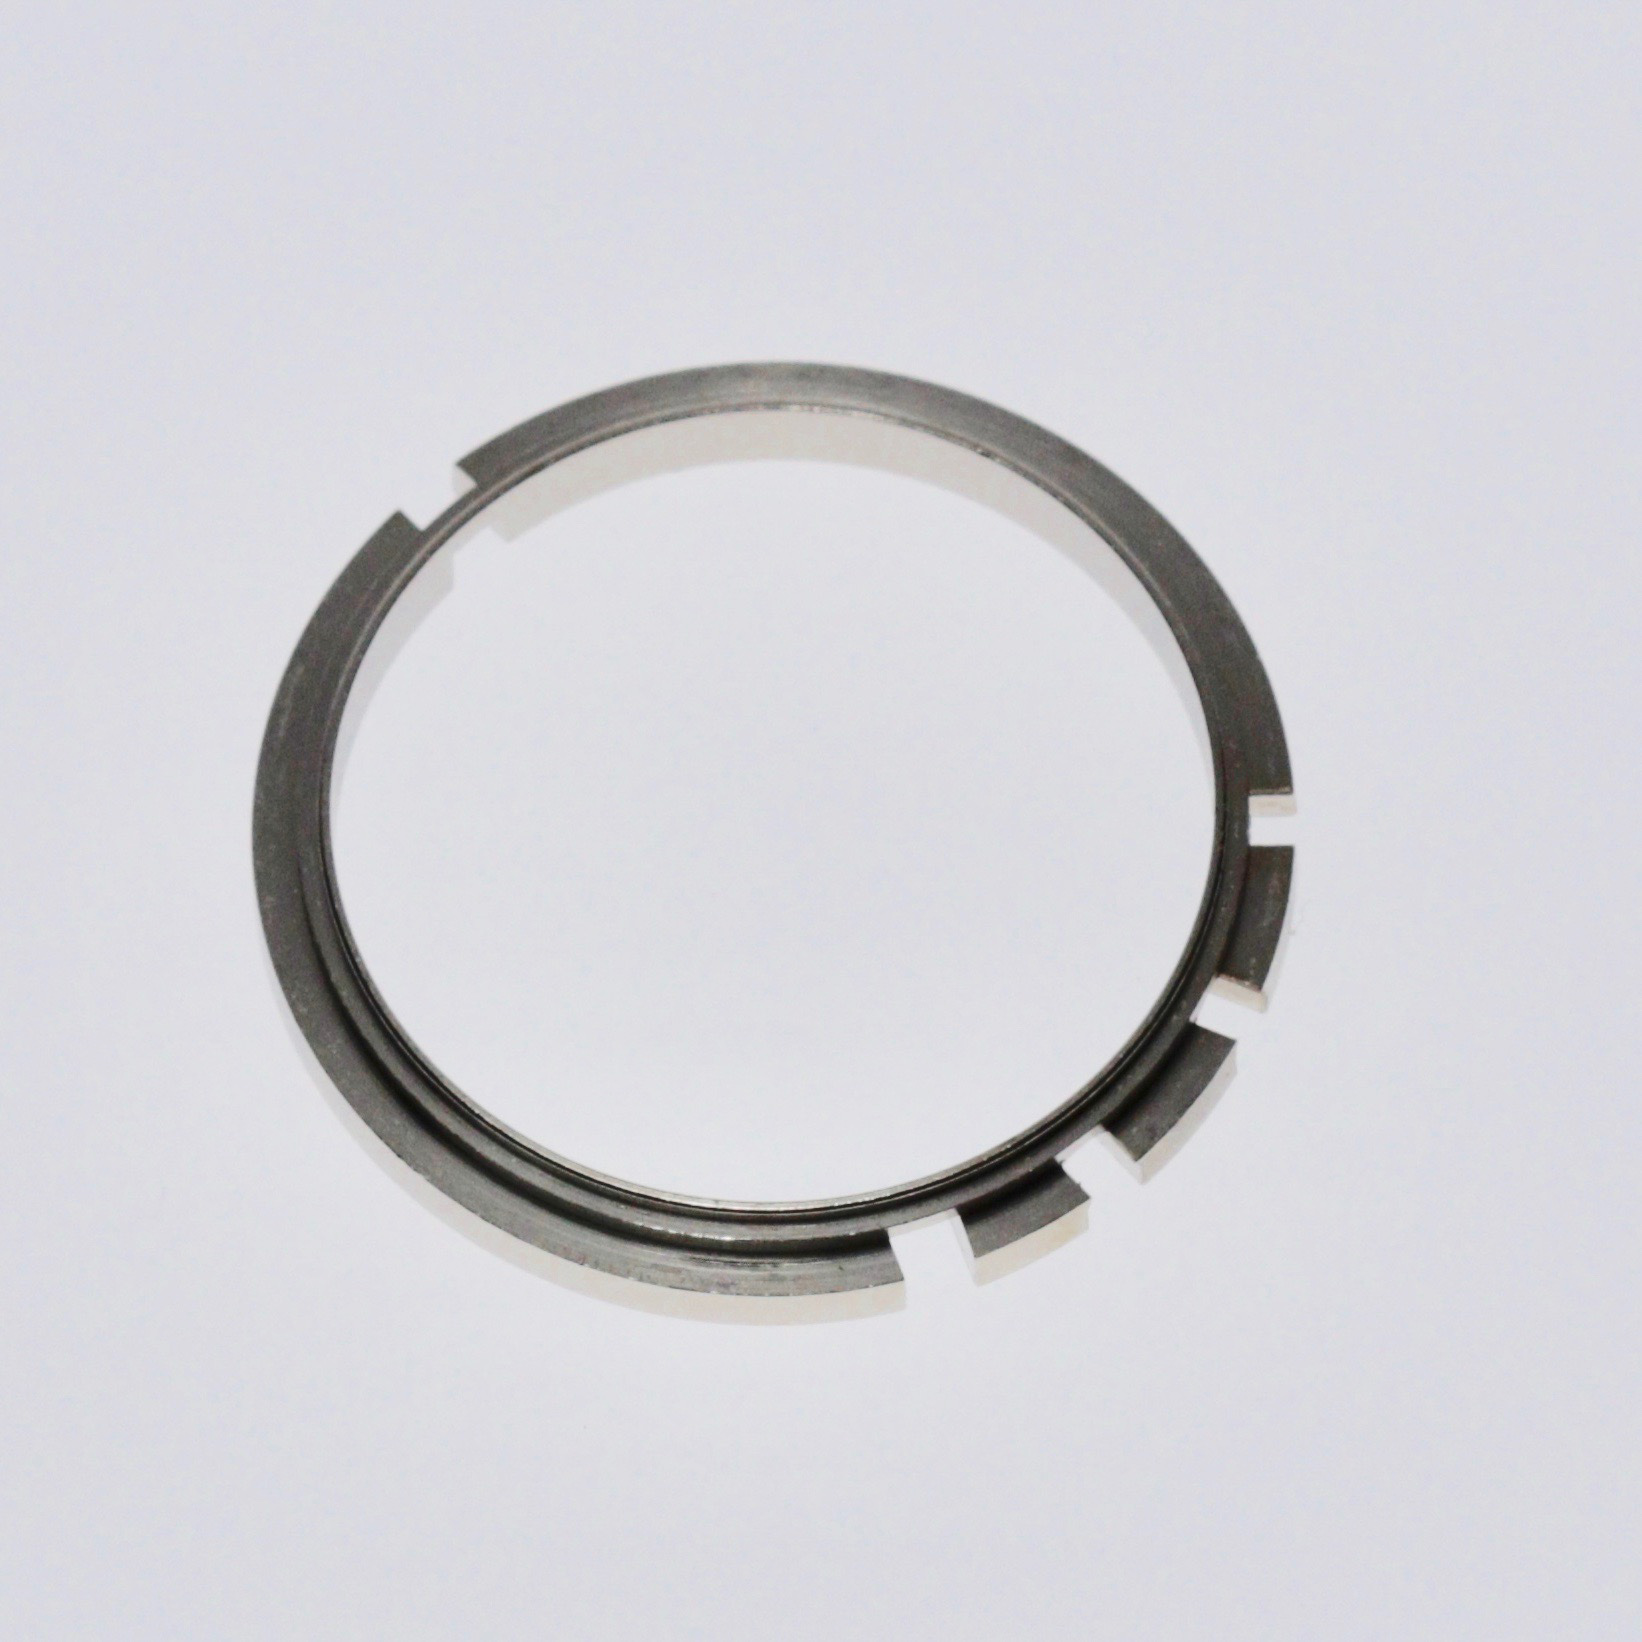 The movement ring, set between the calibre and the bezel